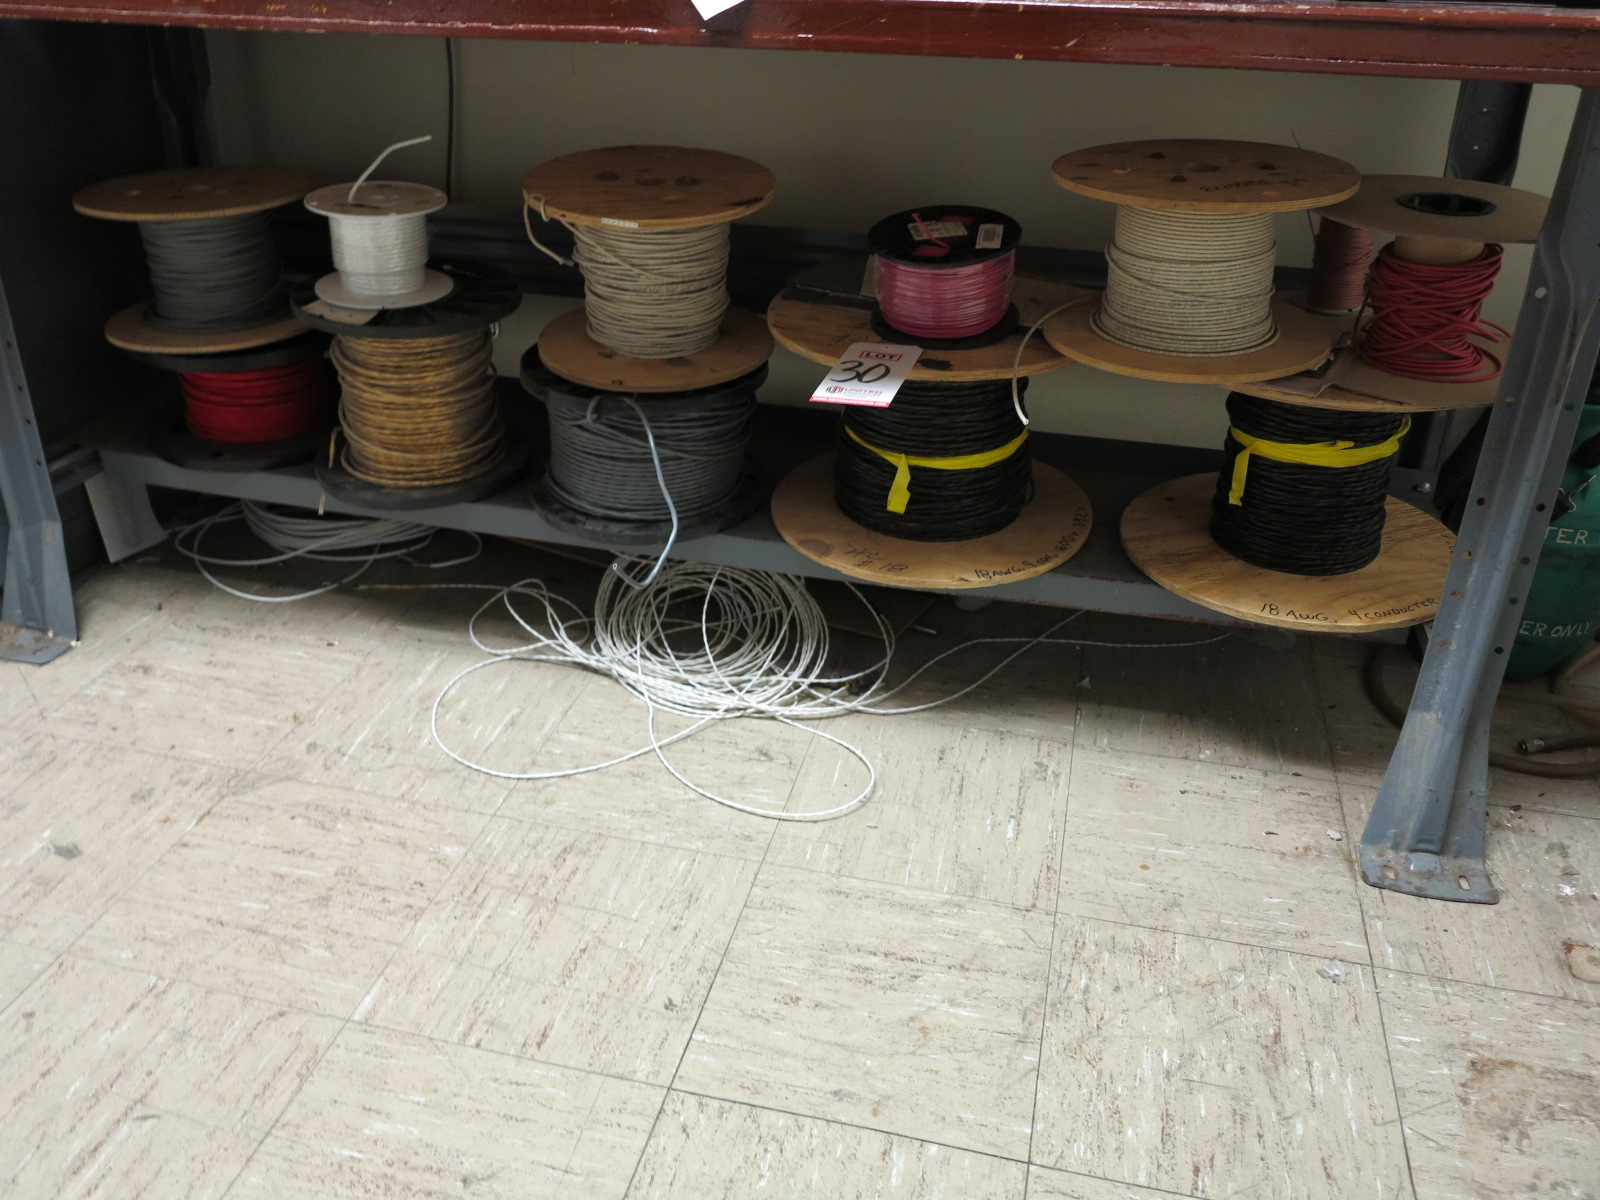 LOT - (11) SPOOLS OF ELECTRICAL WIRE